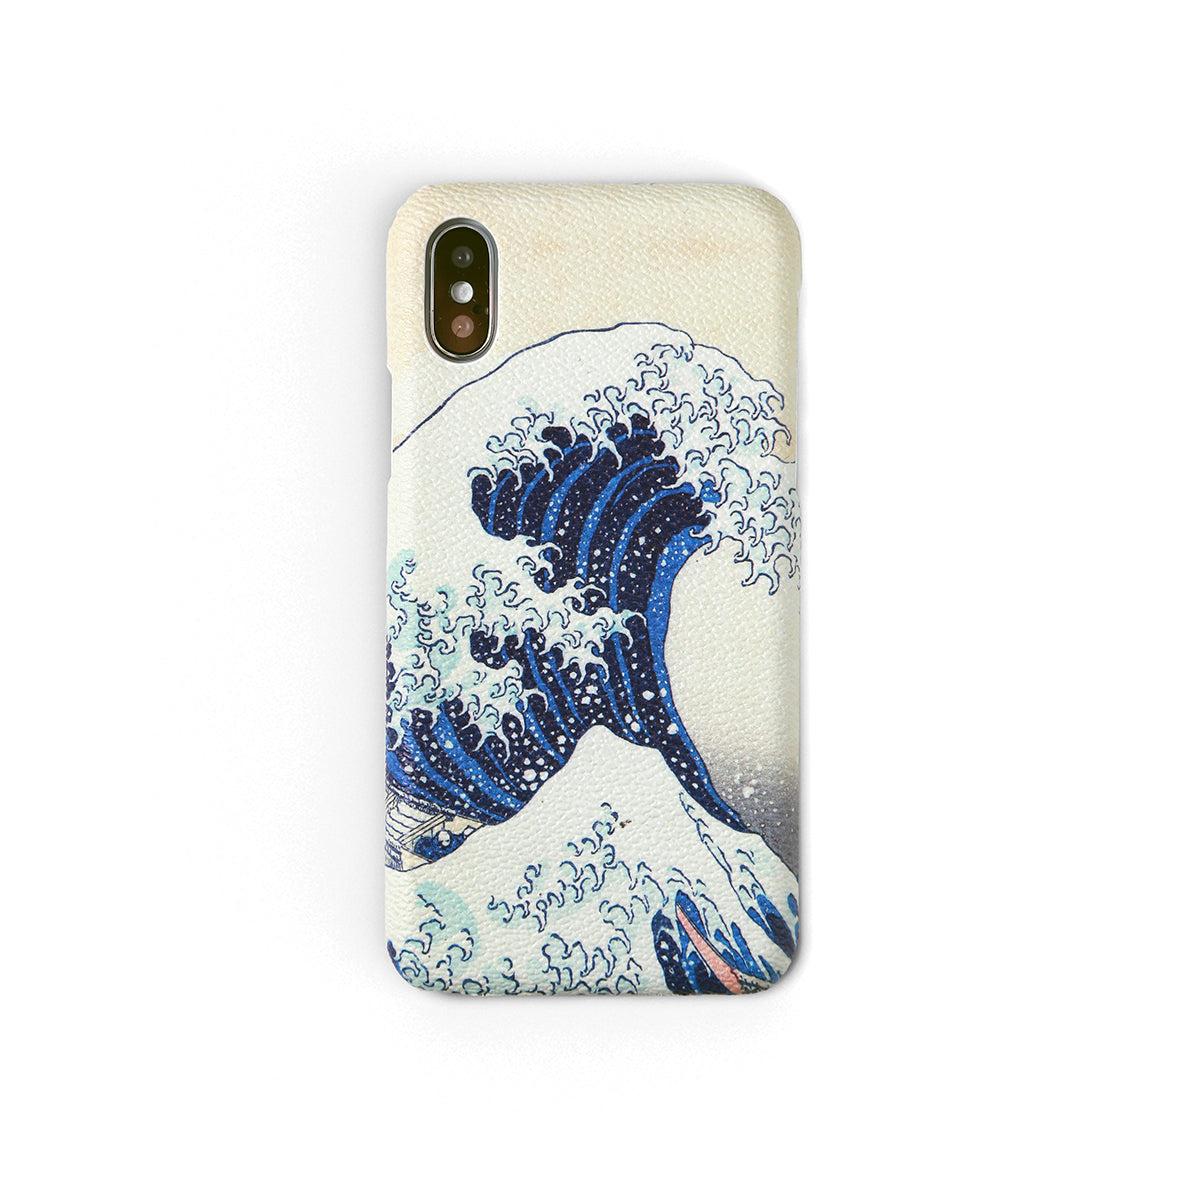 """The Great Wave off Kanagawa"" by Katsushika Hokusai 